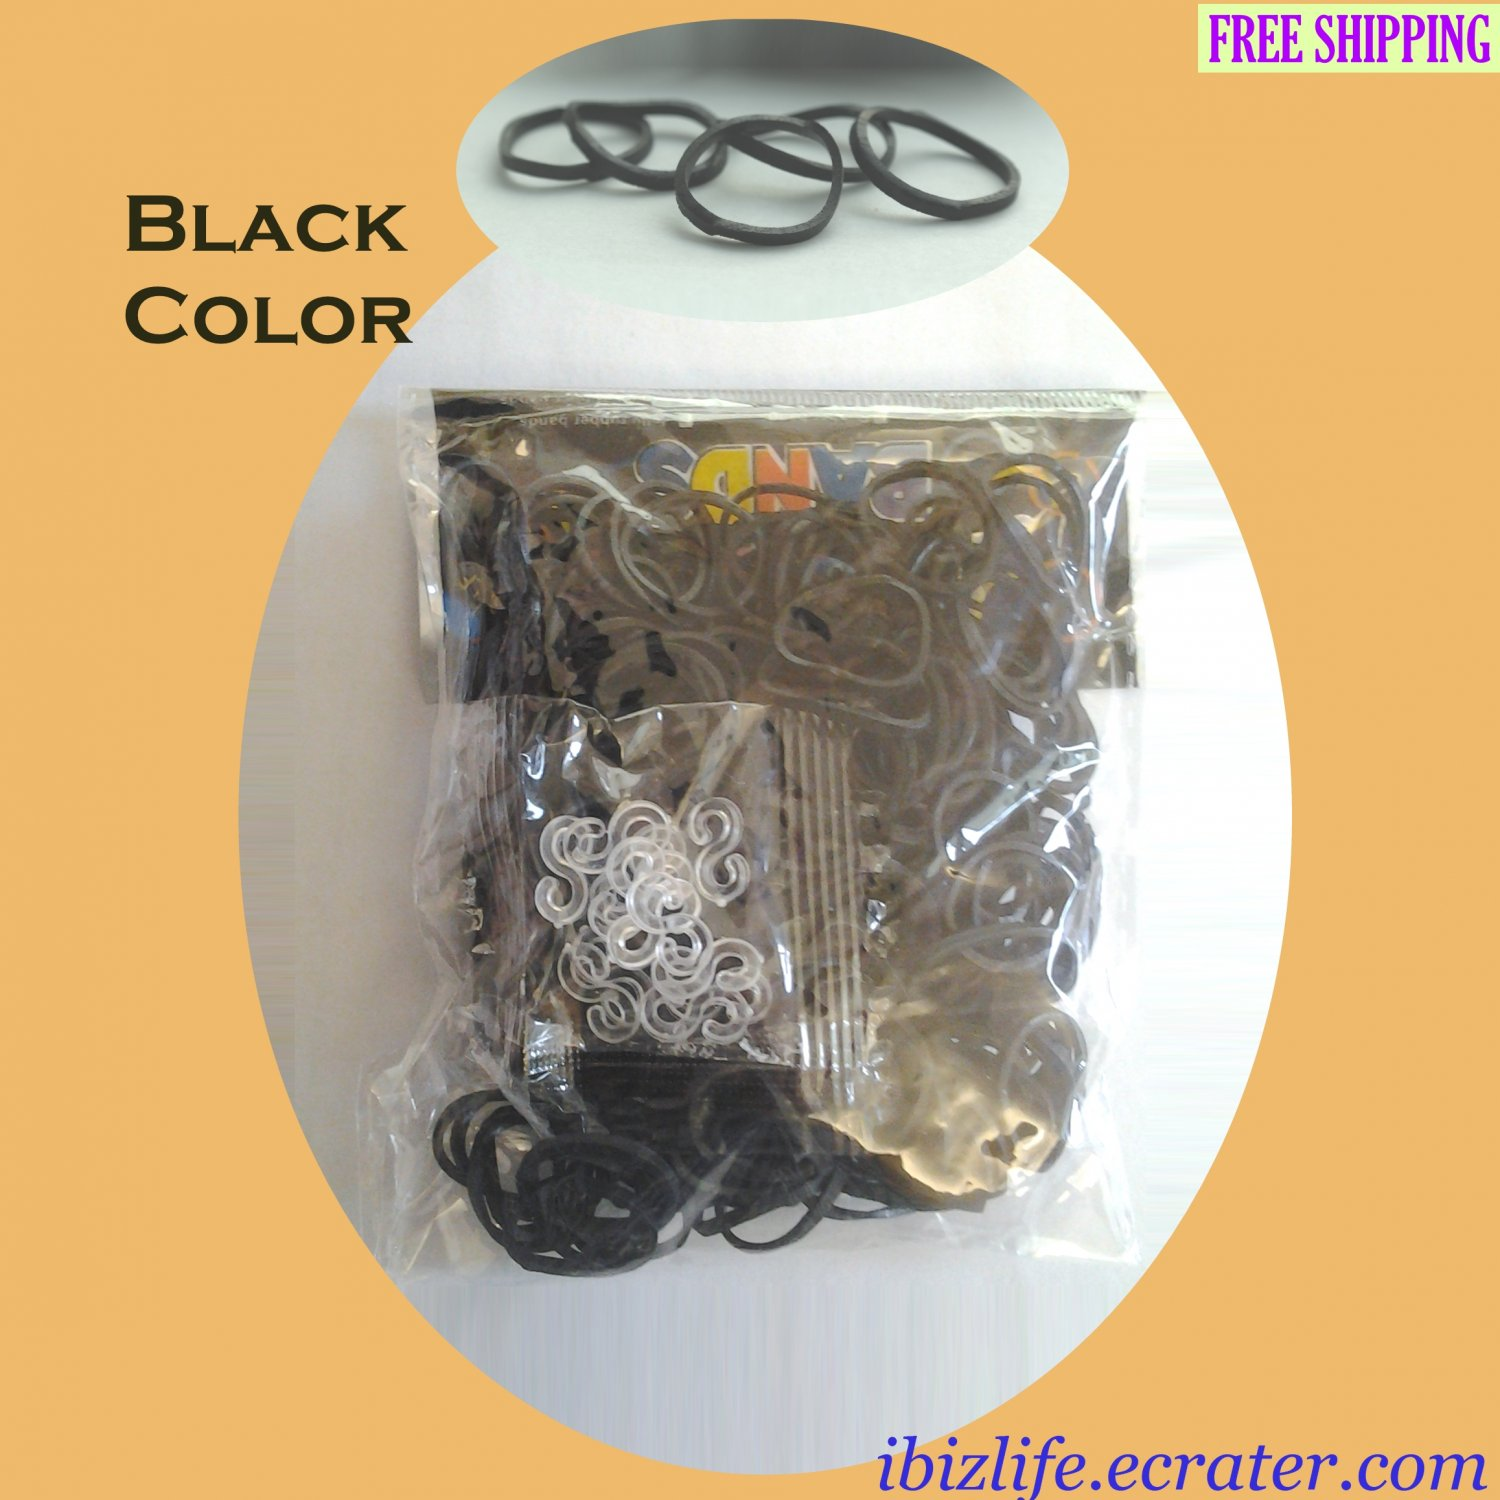 RAINBOW LOOM RUBBER BAND REFILL with 600 bands (Black color) & 24 Clips (RL15)